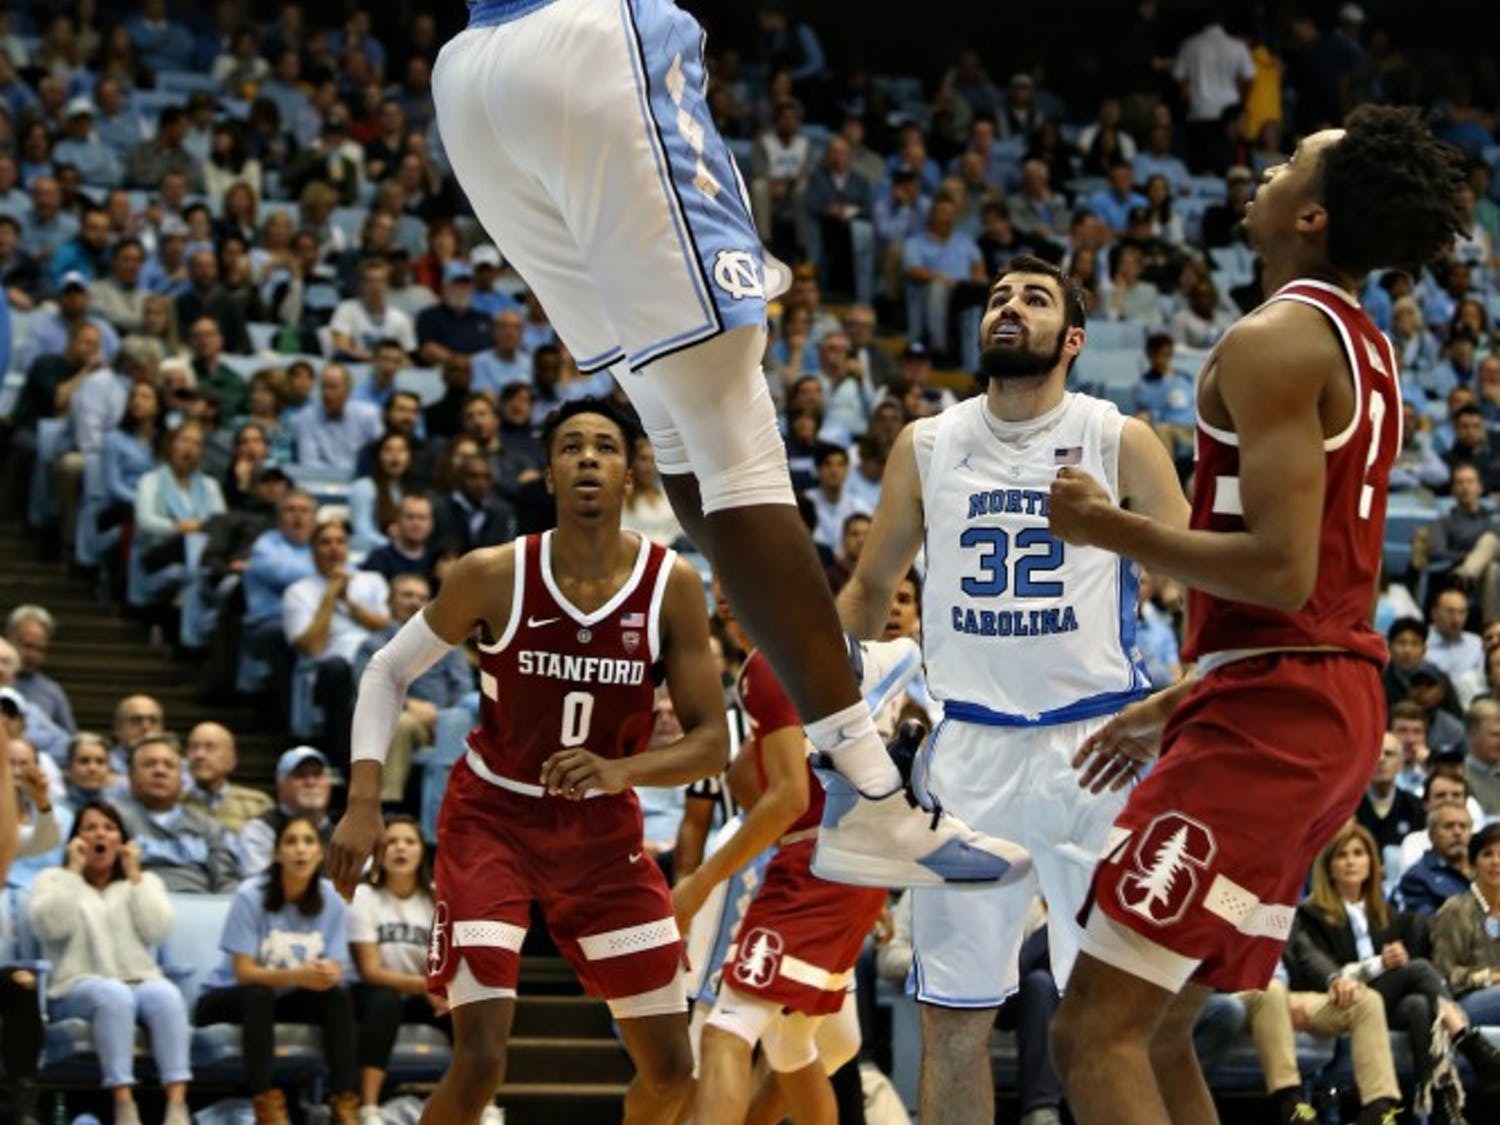 UNC forward Nassir Little (5) dunks against Stanford in the Dean Smith Center on Monday, Nov. 12, 2018. UNC won 90-72.